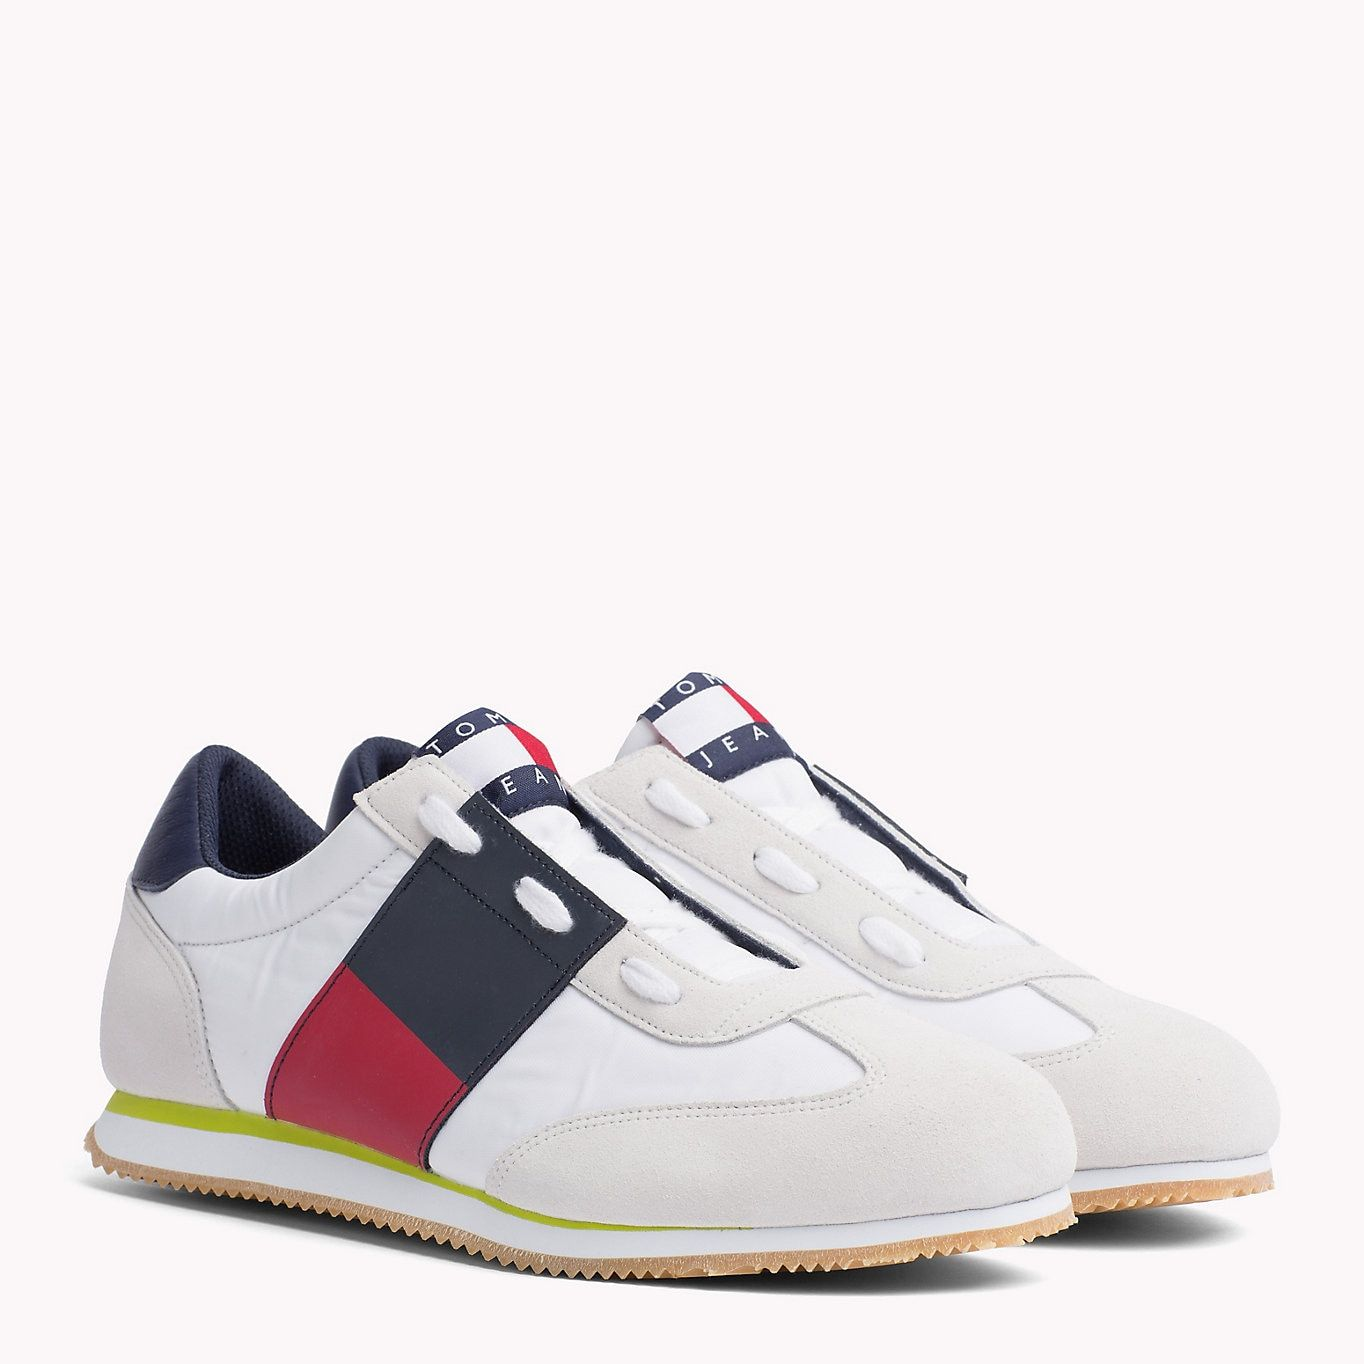 Mens trainers, Tommy hilfiger